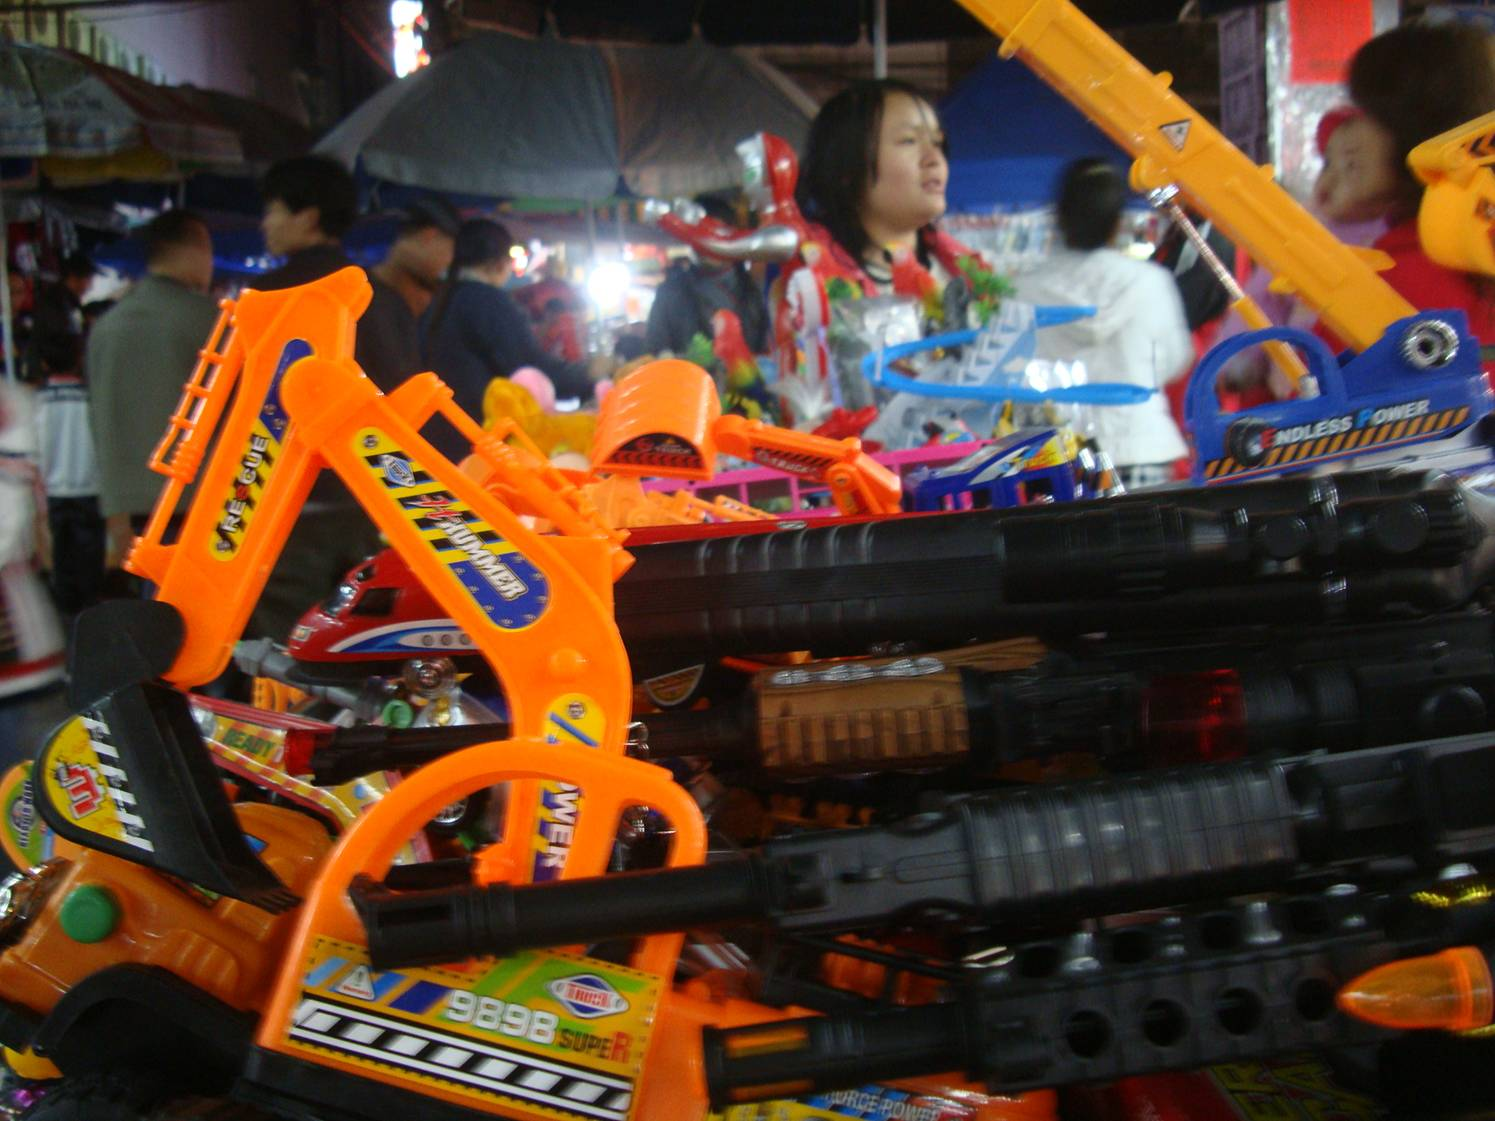 Picture:  A toy store in the center of the crowded street where the night market  blooms each evening.  Haikou on Hainan Island, China